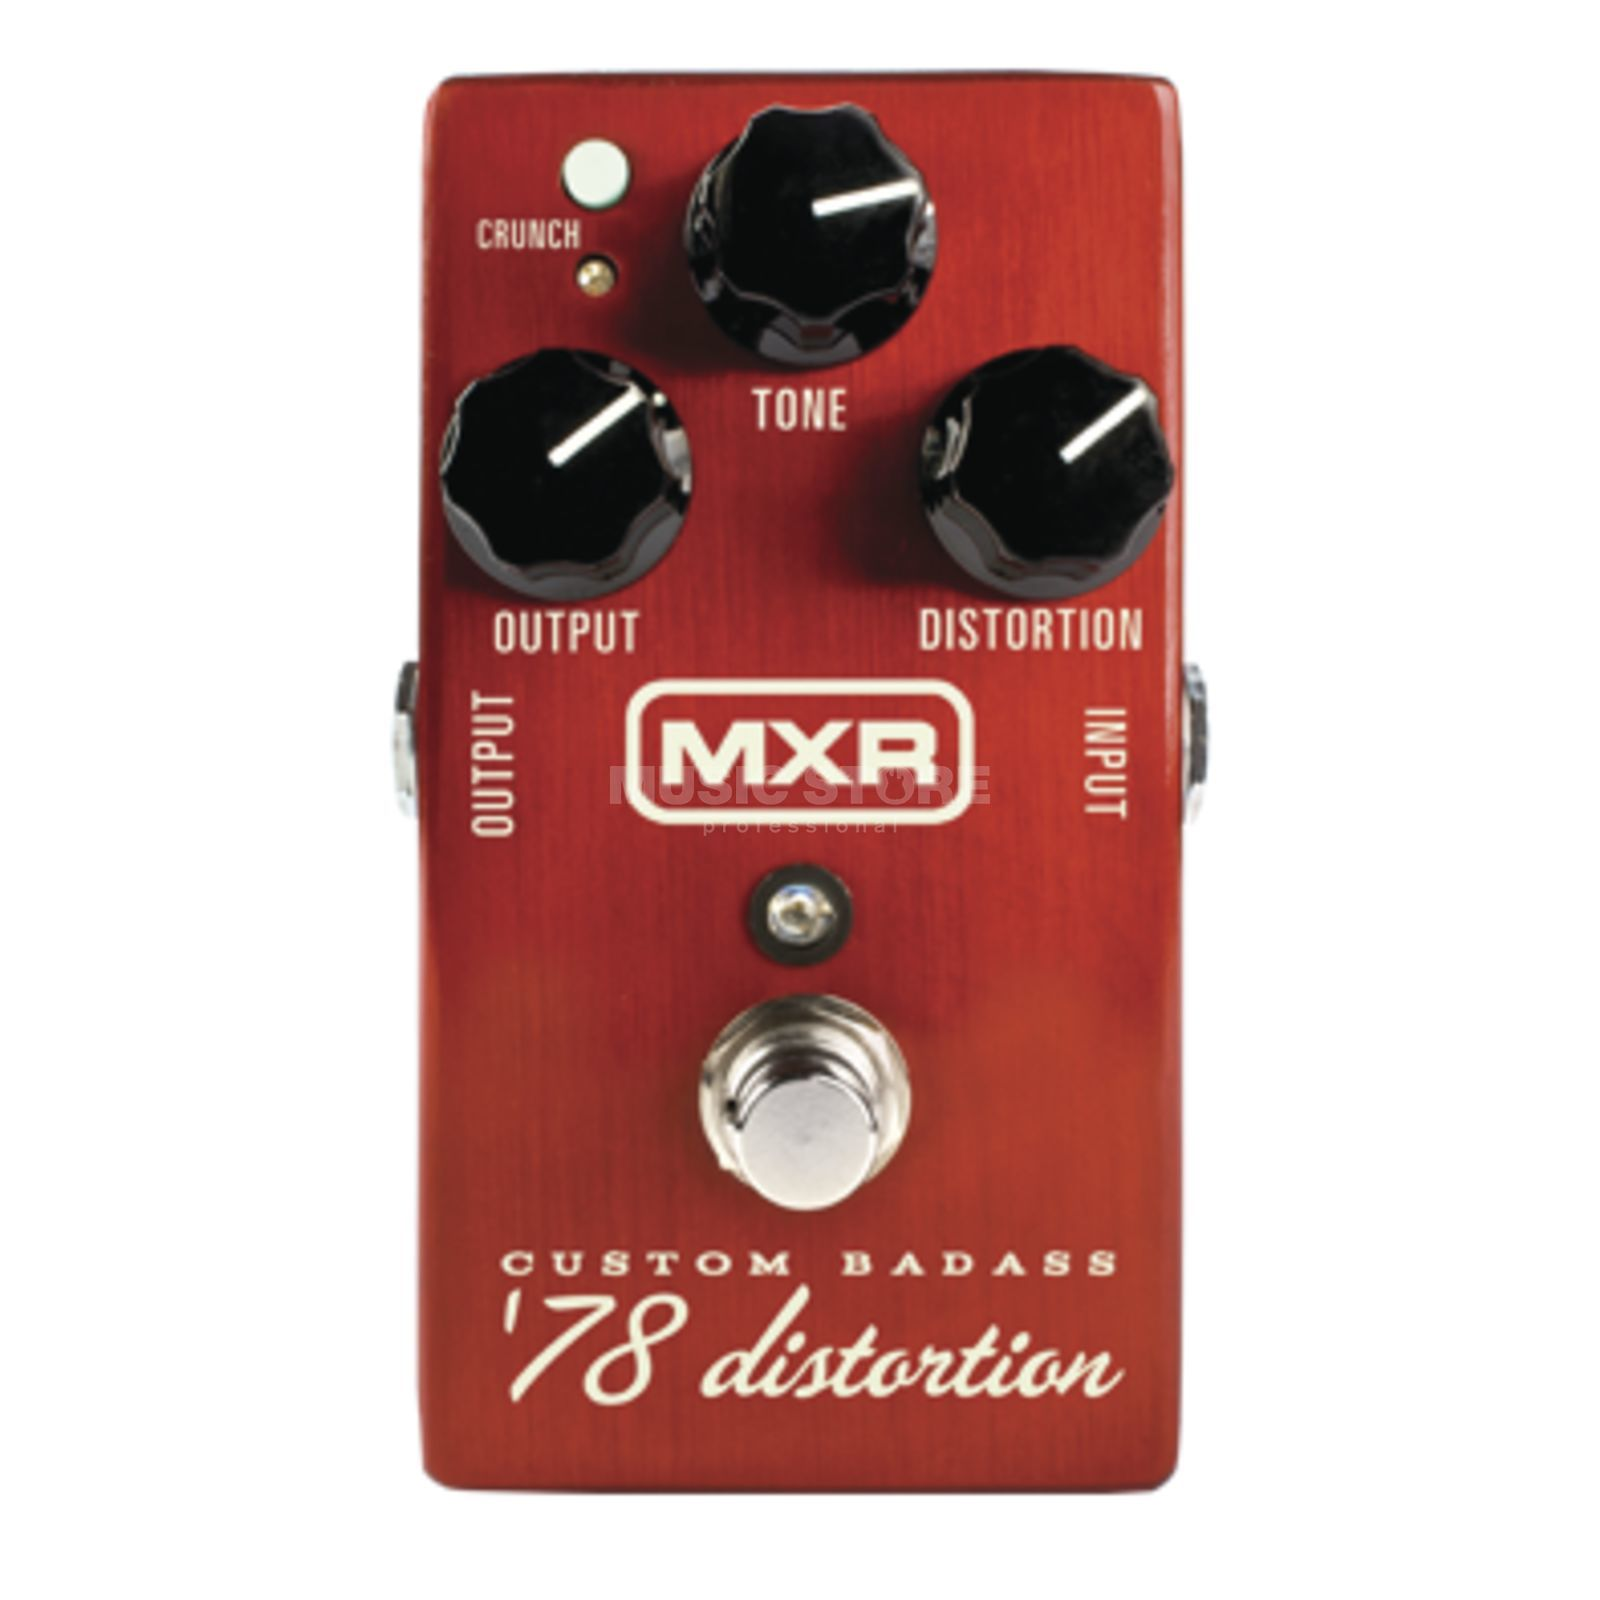 MXR M78 Custom Badass '78 Distorti on Guitar Effects Pedal   Product Image